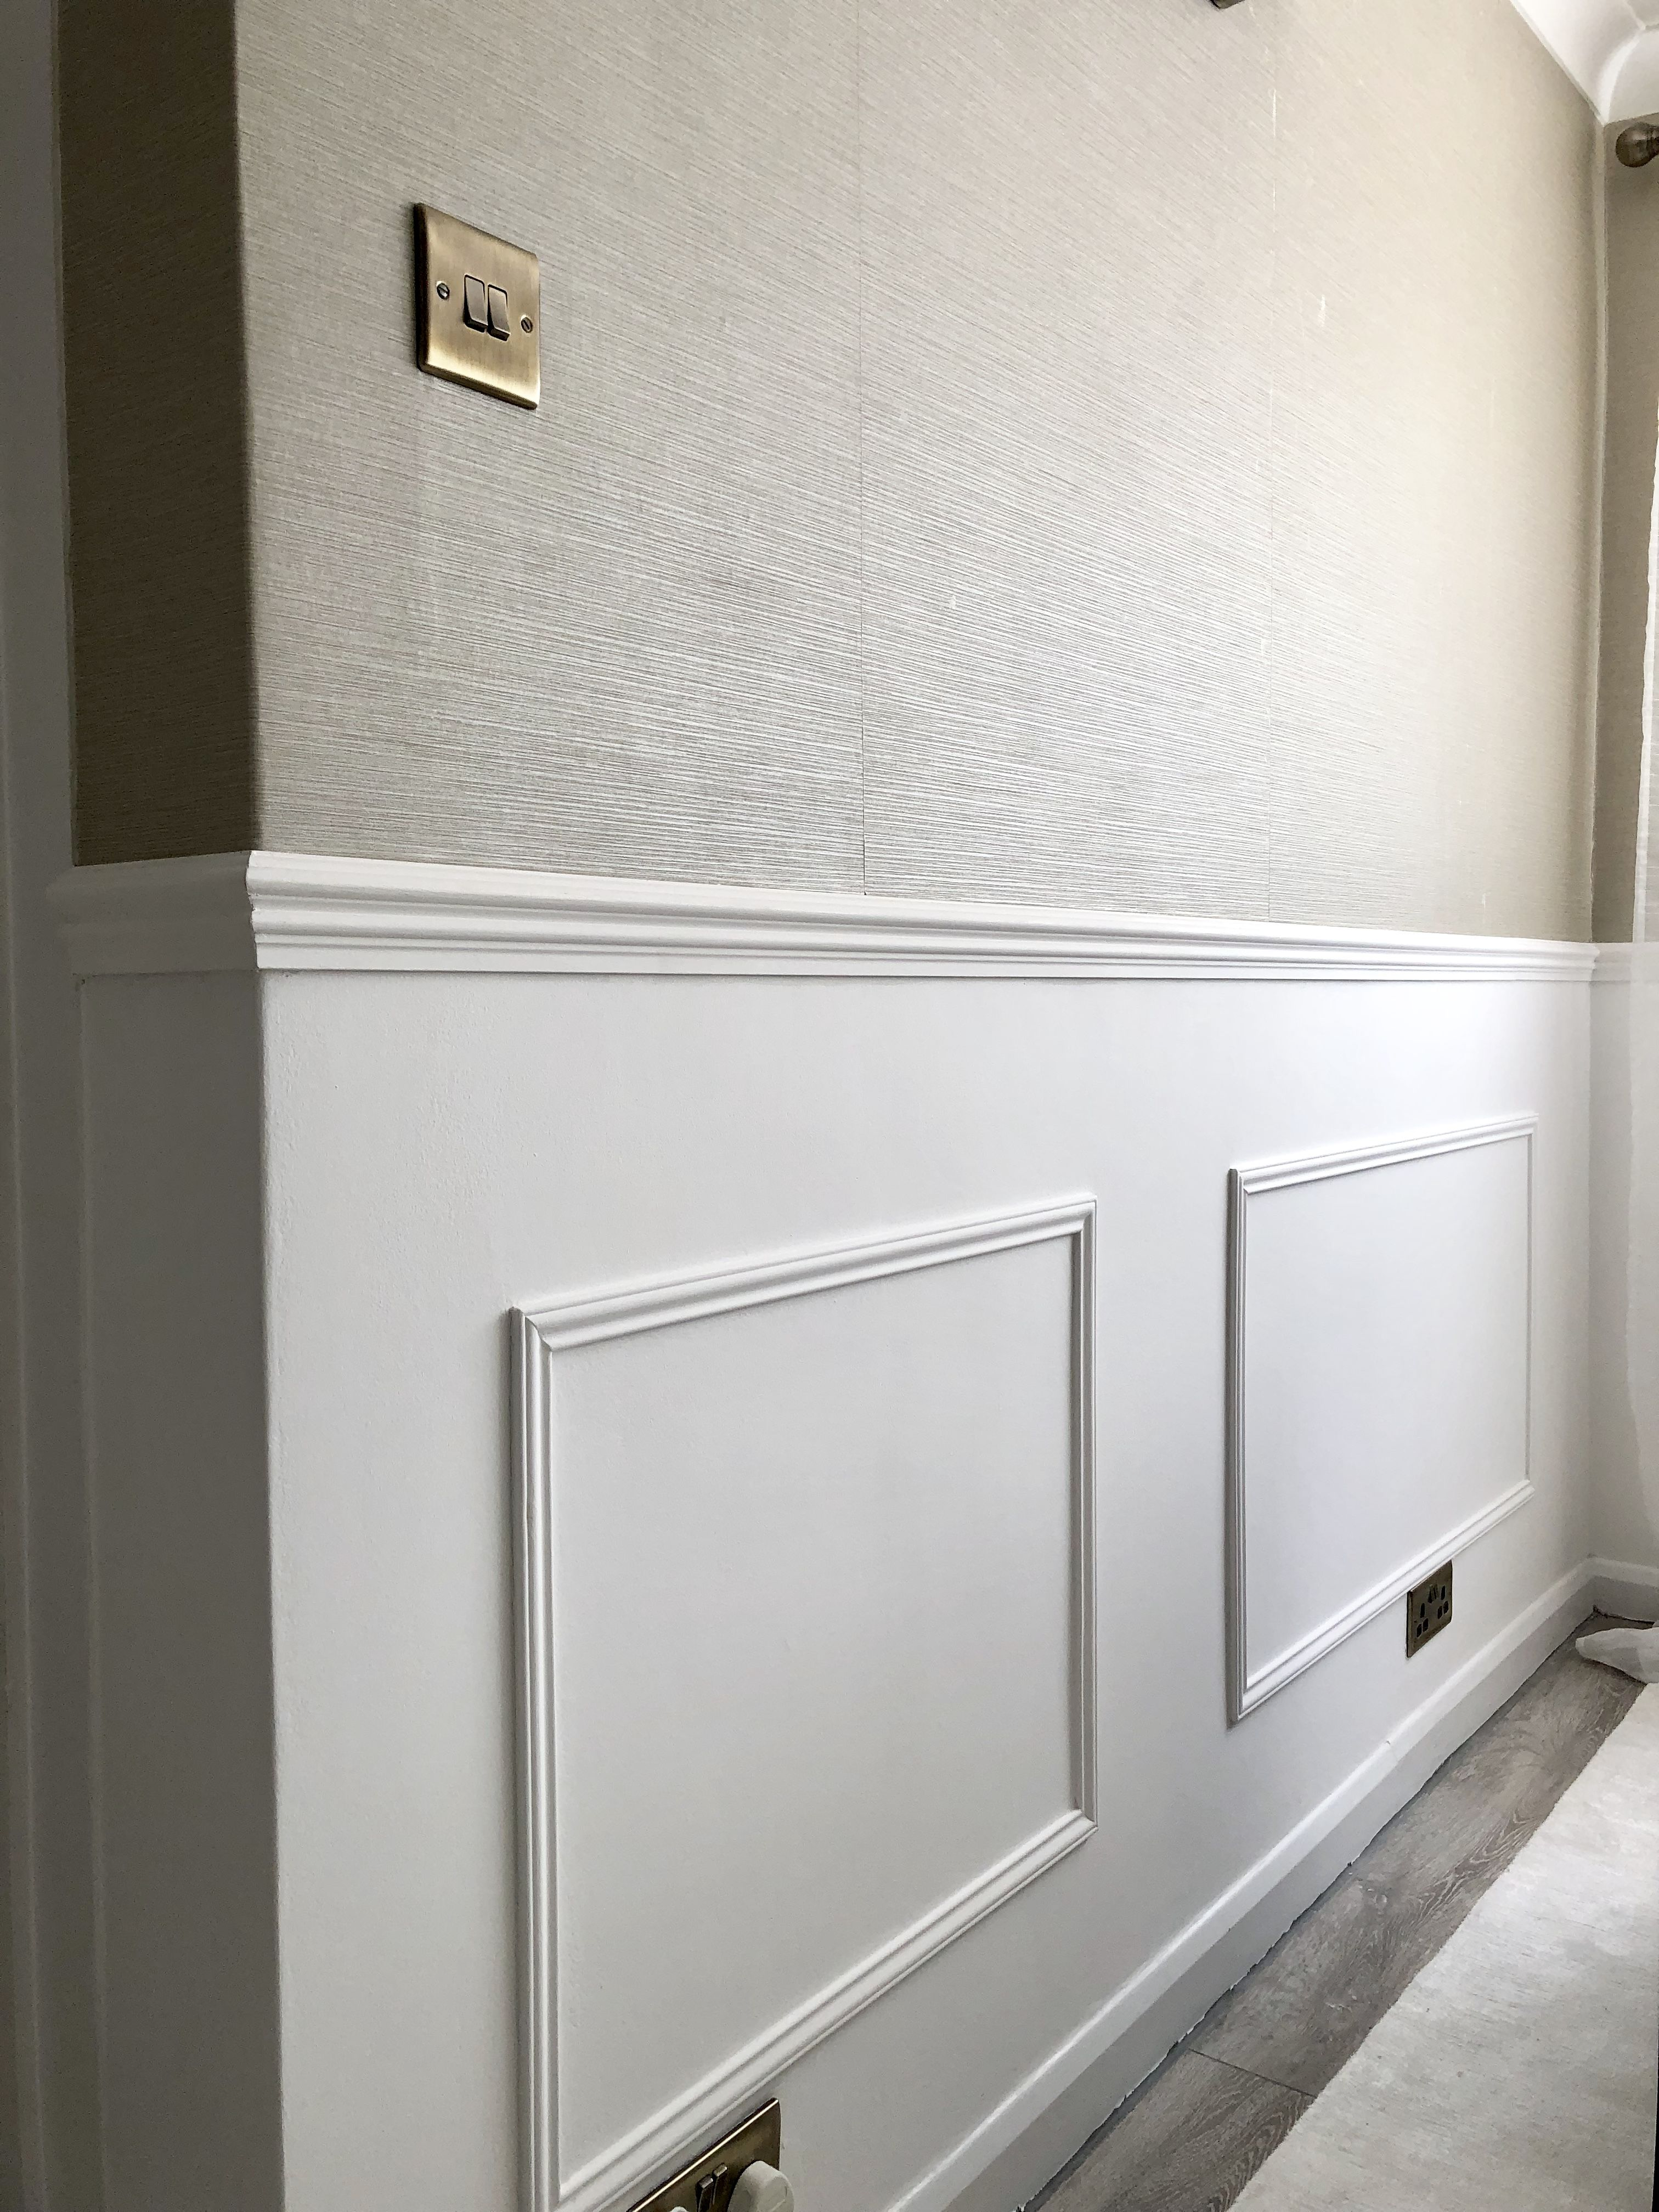 Diy Wall Panelling Tutorial Interior Design Blog Cloud Interiors Wall Paneling Diy Hallway Decorating Interior Design Blog